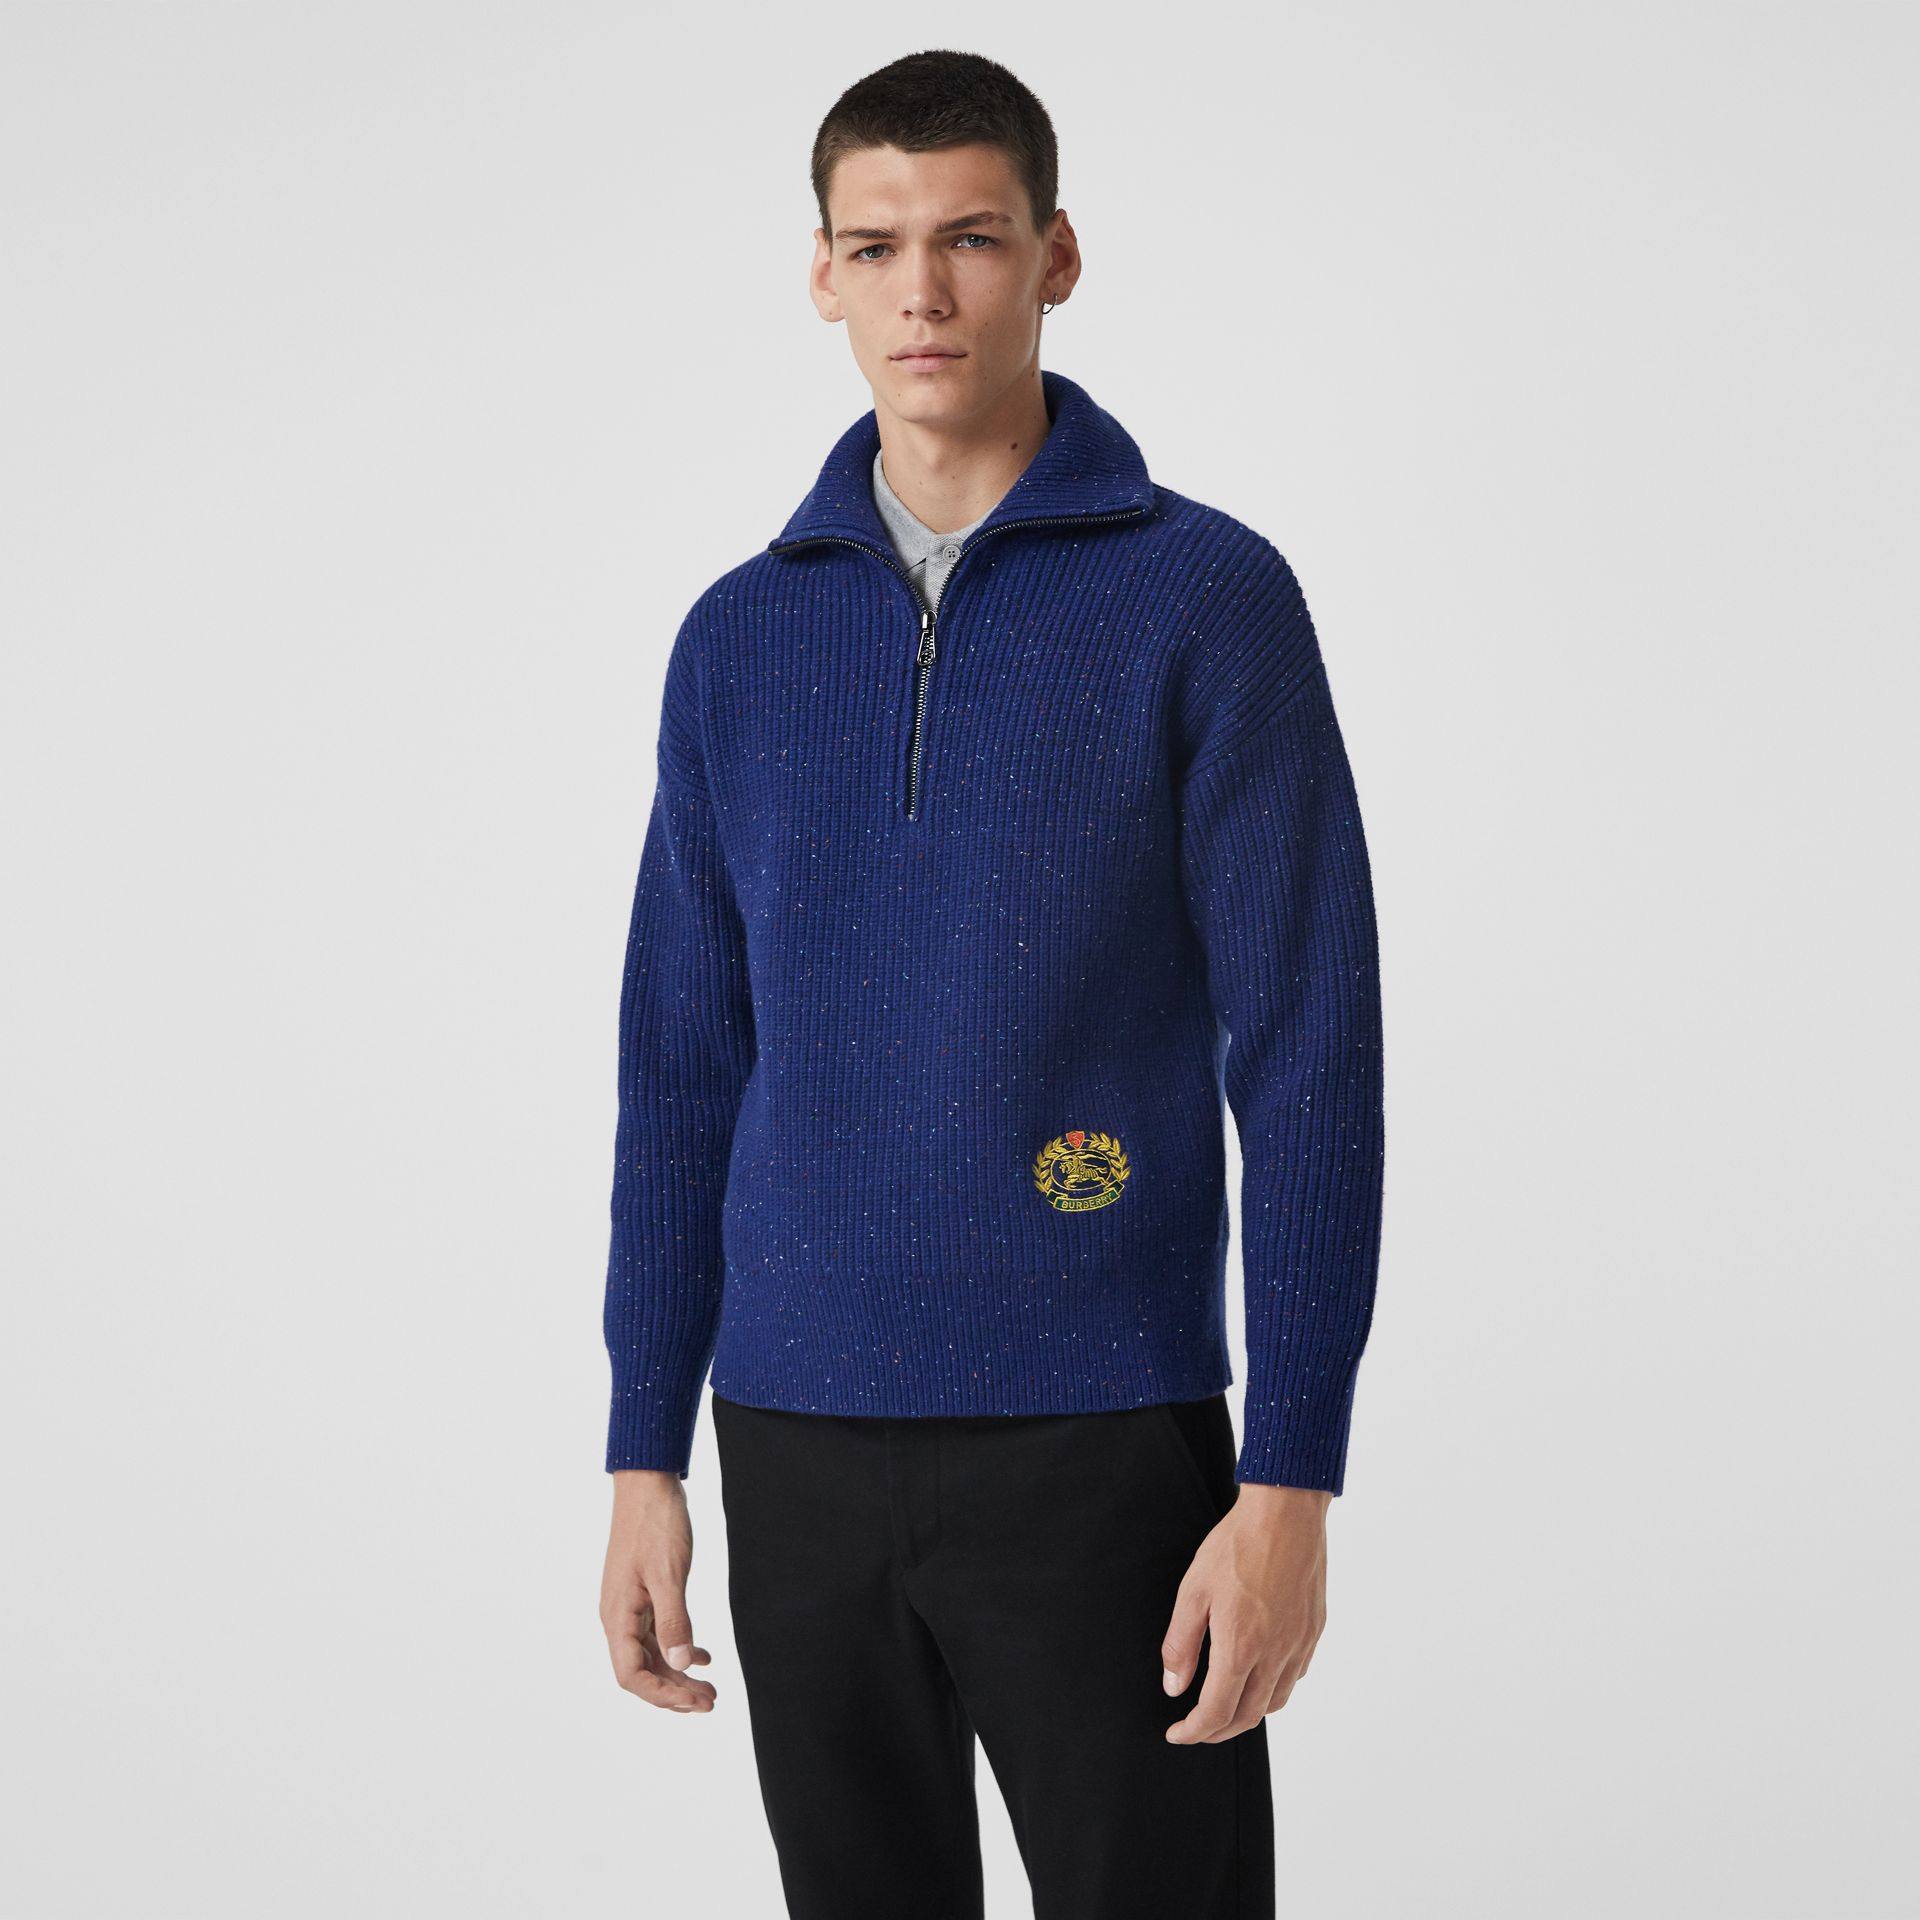 Rib Knit Wool Cashmere Blend Half-zip Sweater in Navy - Men | Burberry Canada - gallery image 5